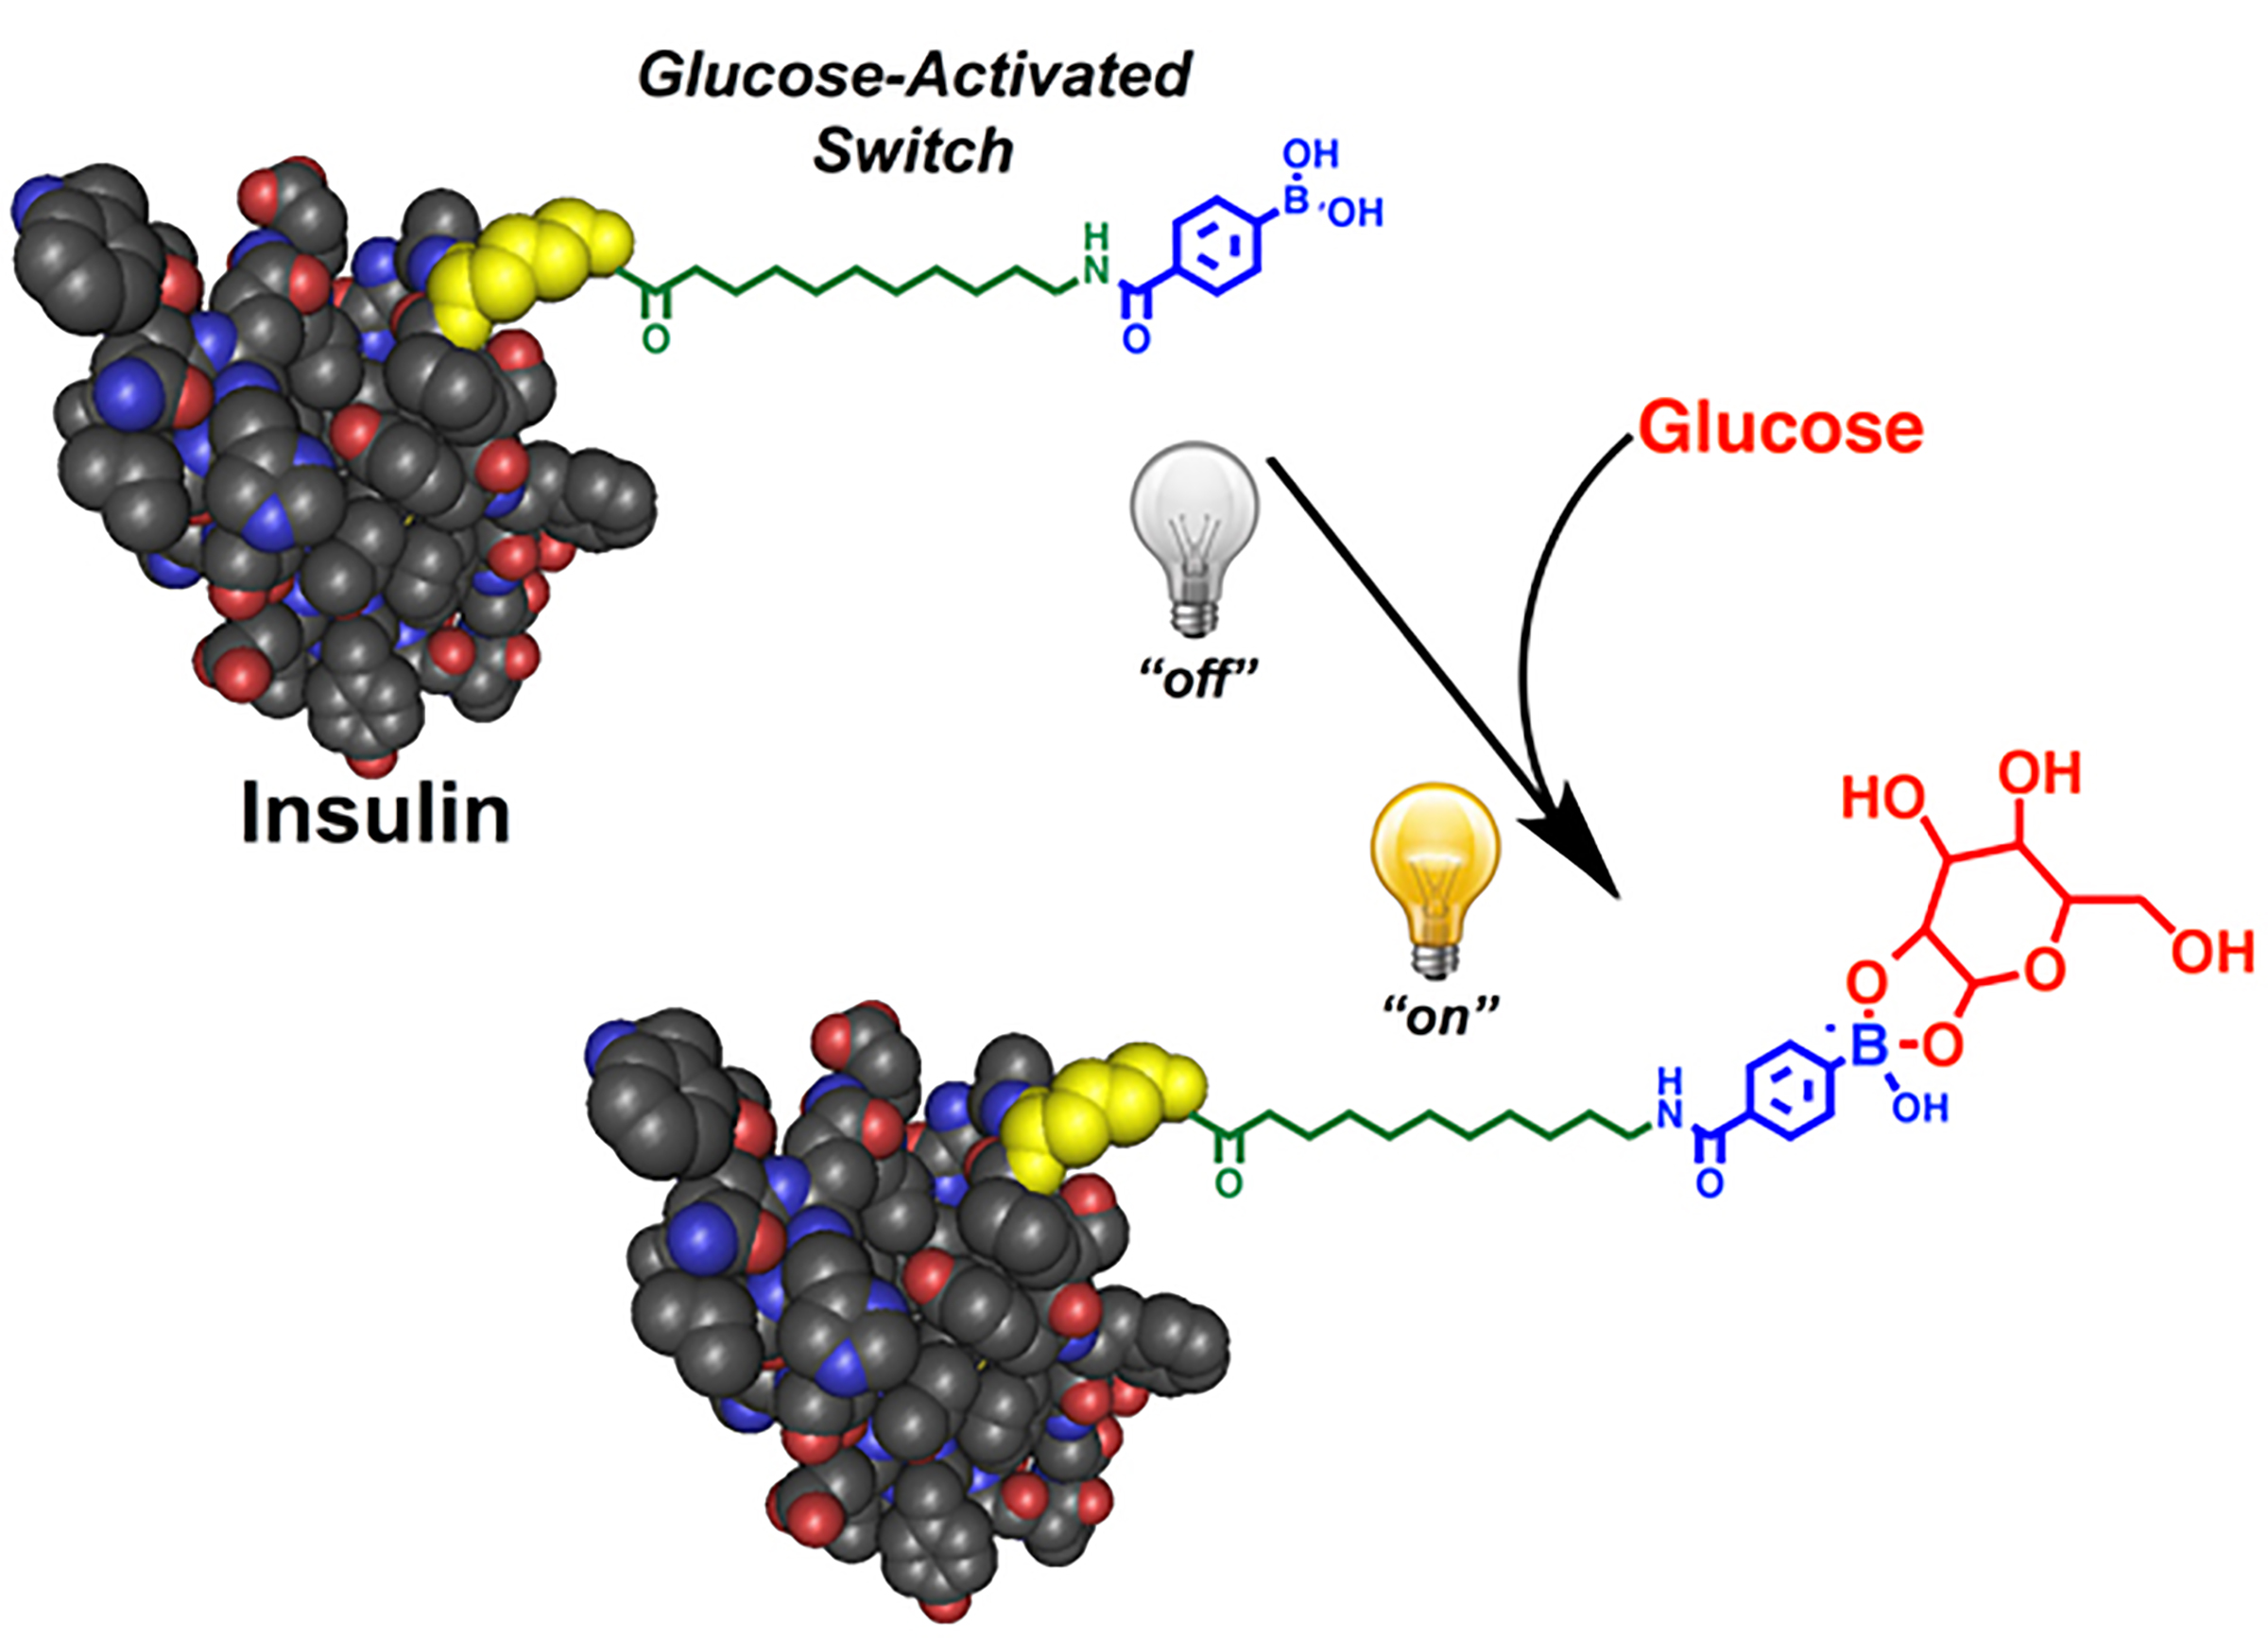 """Scientists have developed a """"smart"""" insulin that self-activates in response to blood sugar levels. When blood sugar is high, the insulin becomes active, working quickly to normalize blood sugar levels. One injection of the smart insulin, called Ins-PBA-F, can repeatedly and automatically normalize blood sugar levels over a minimum of 14 hours in mice with a type 1 diabetes-like condition. Scientists are now developing the modified insulin into a therapy suitable for human use. Doing so would greatly improve the health and quality of life for diabetics."""